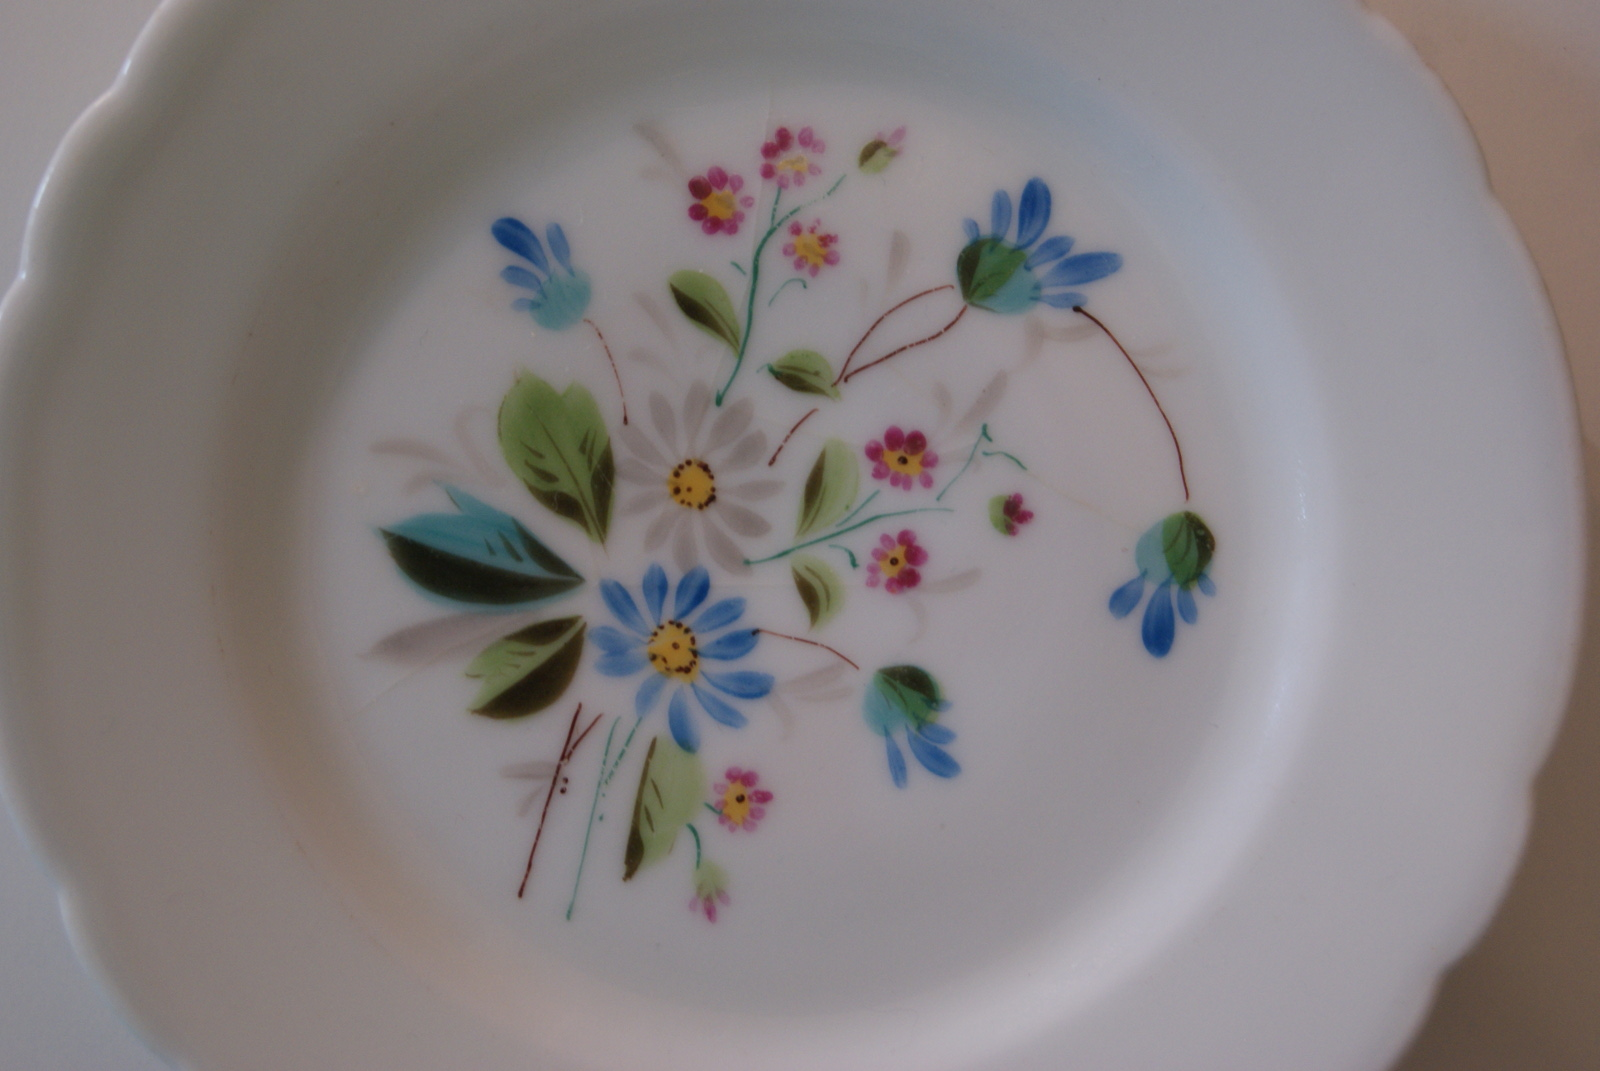 Fraureuth plate with bouquet, white, red, blue flowers and leaves